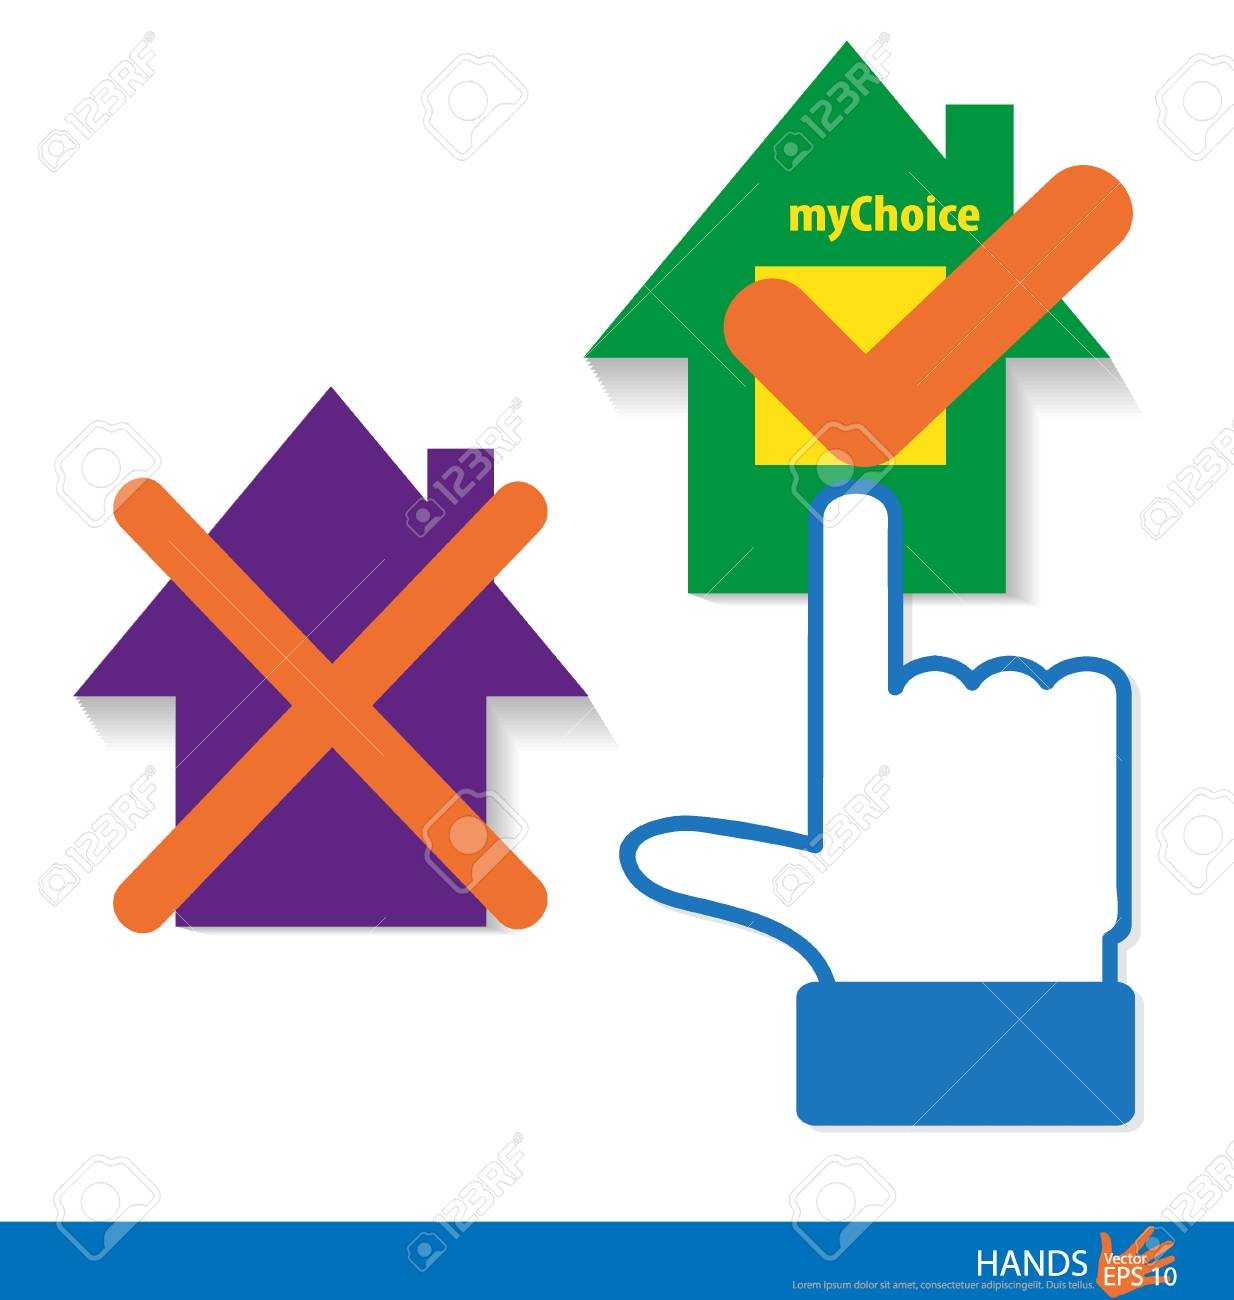 My Choice - My House. Vector illustration. Stock Vector - 22690417